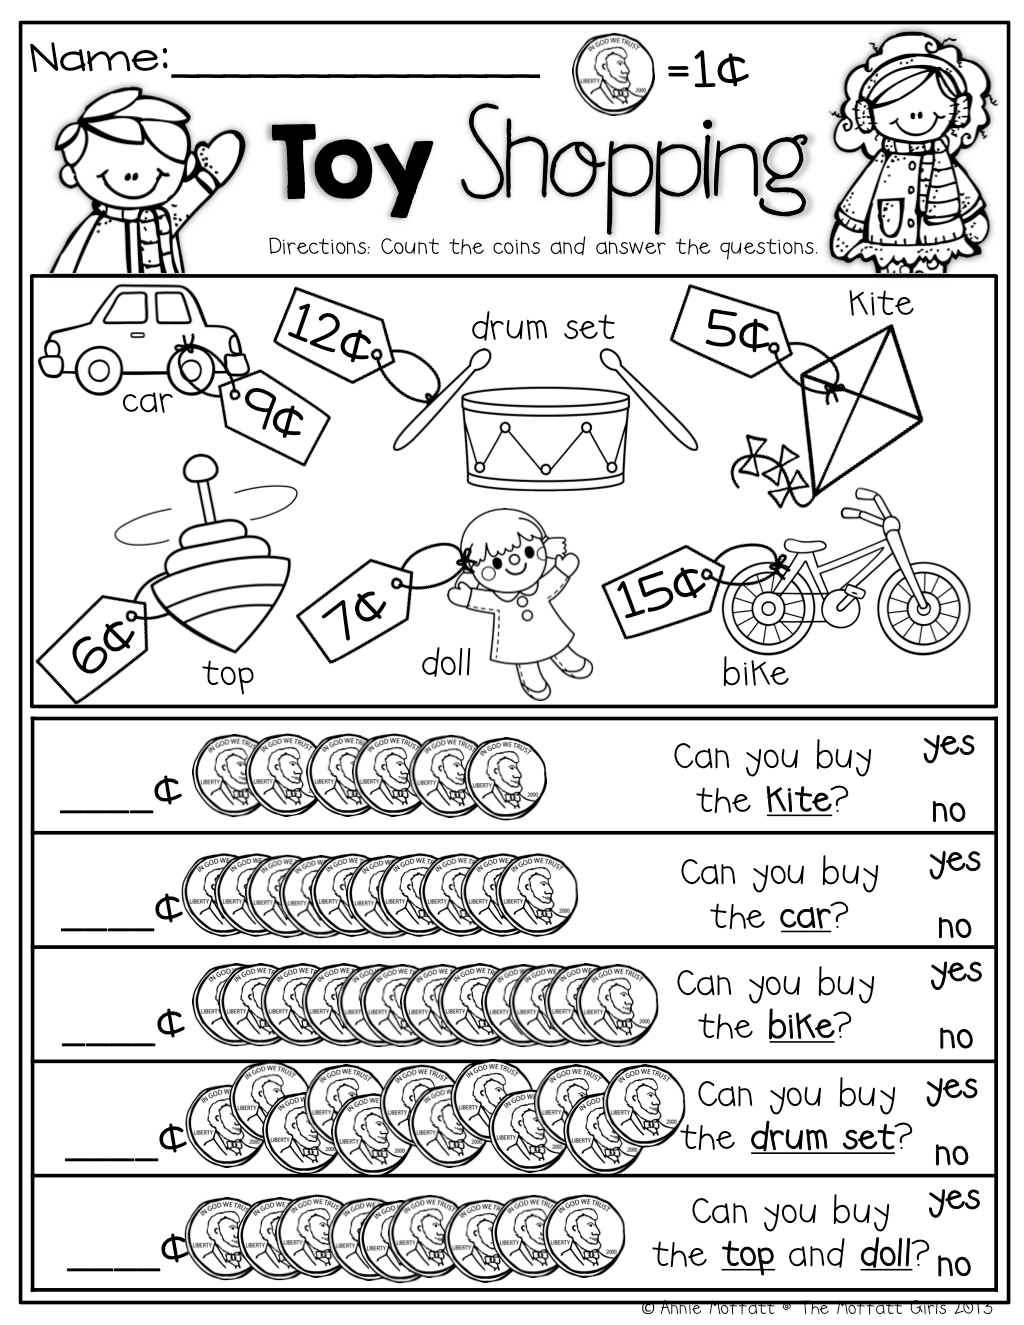 Worksheet On Counting Coins